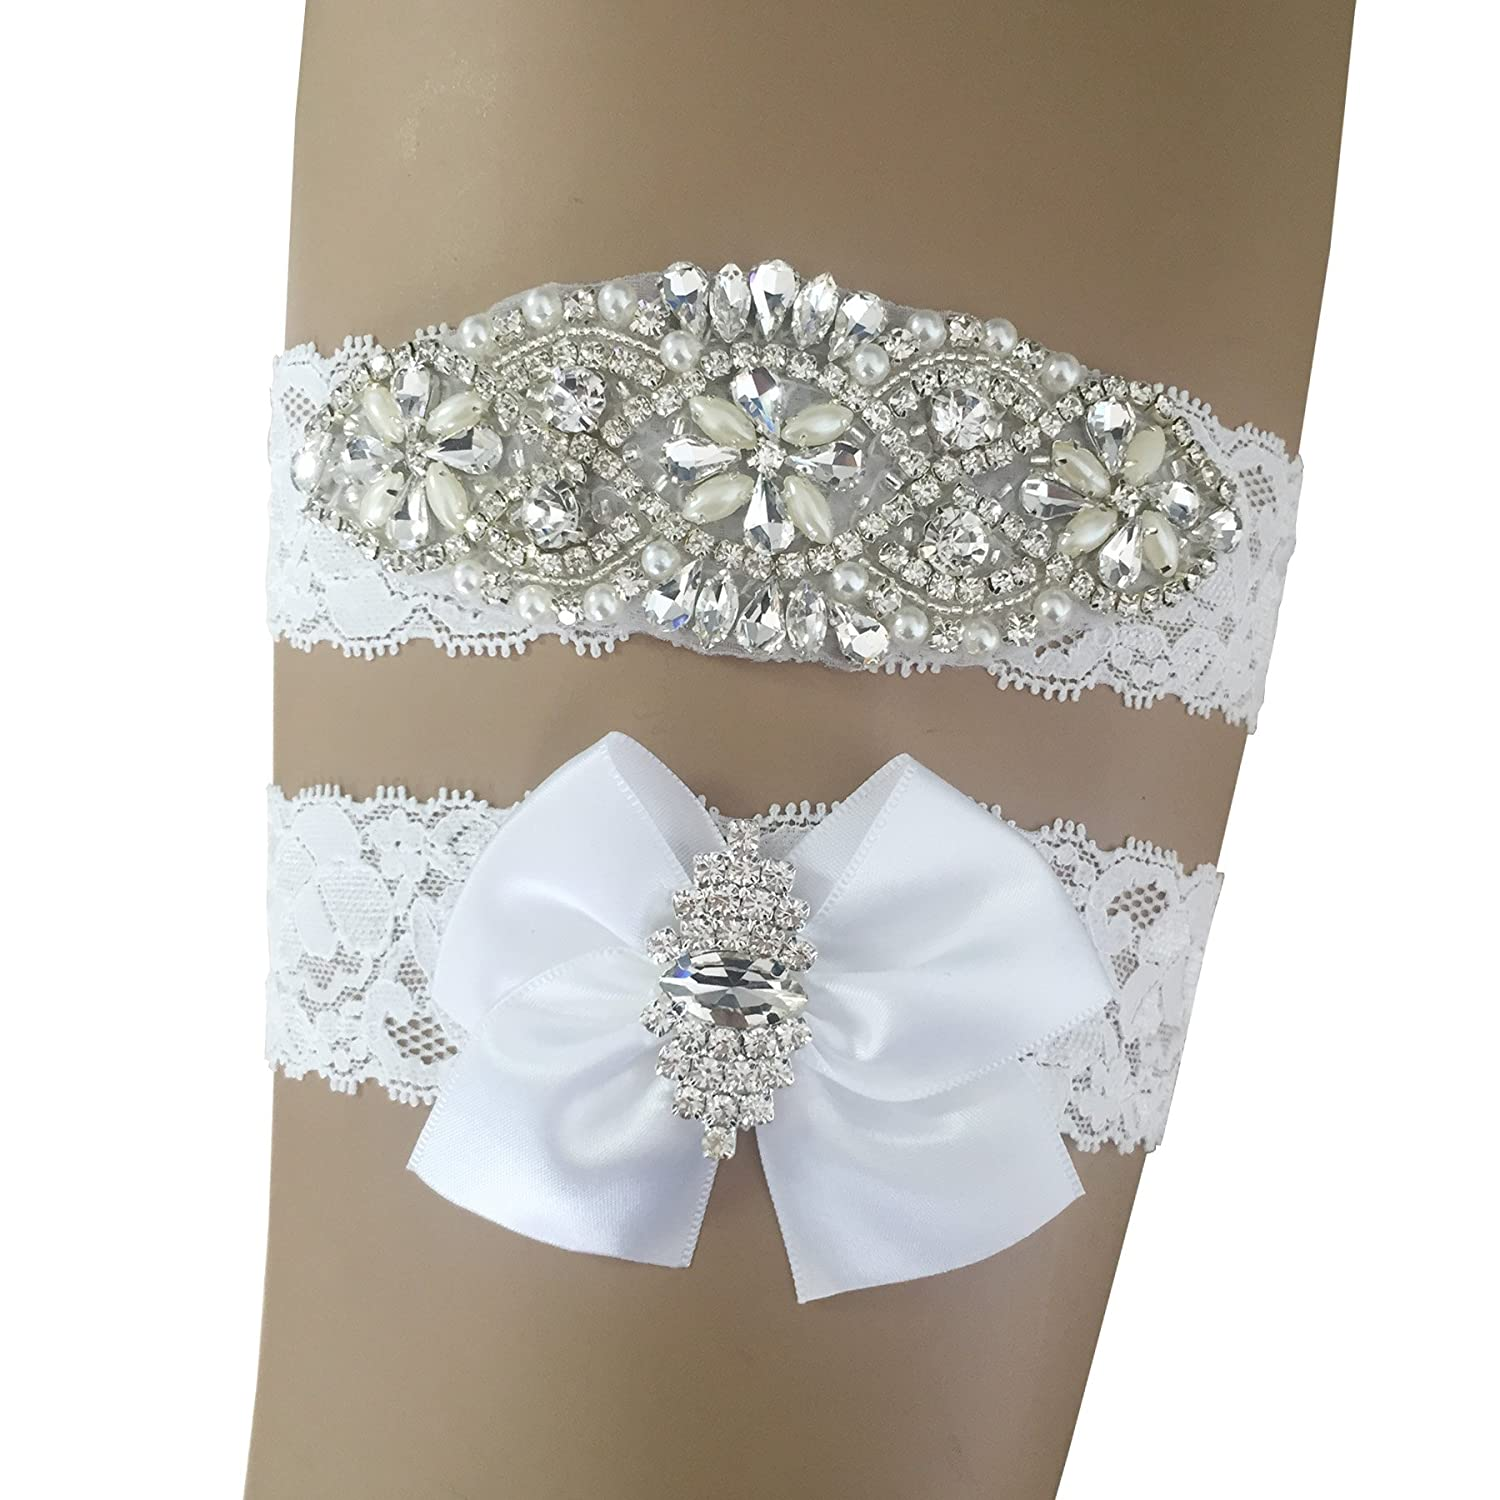 073bc7e0c M  14-18 inches  L  17-21 inches  XL  20-25 inches  XXL  24-28 inches   XXXL  27-30 inches. Garter For the Brides Special Day